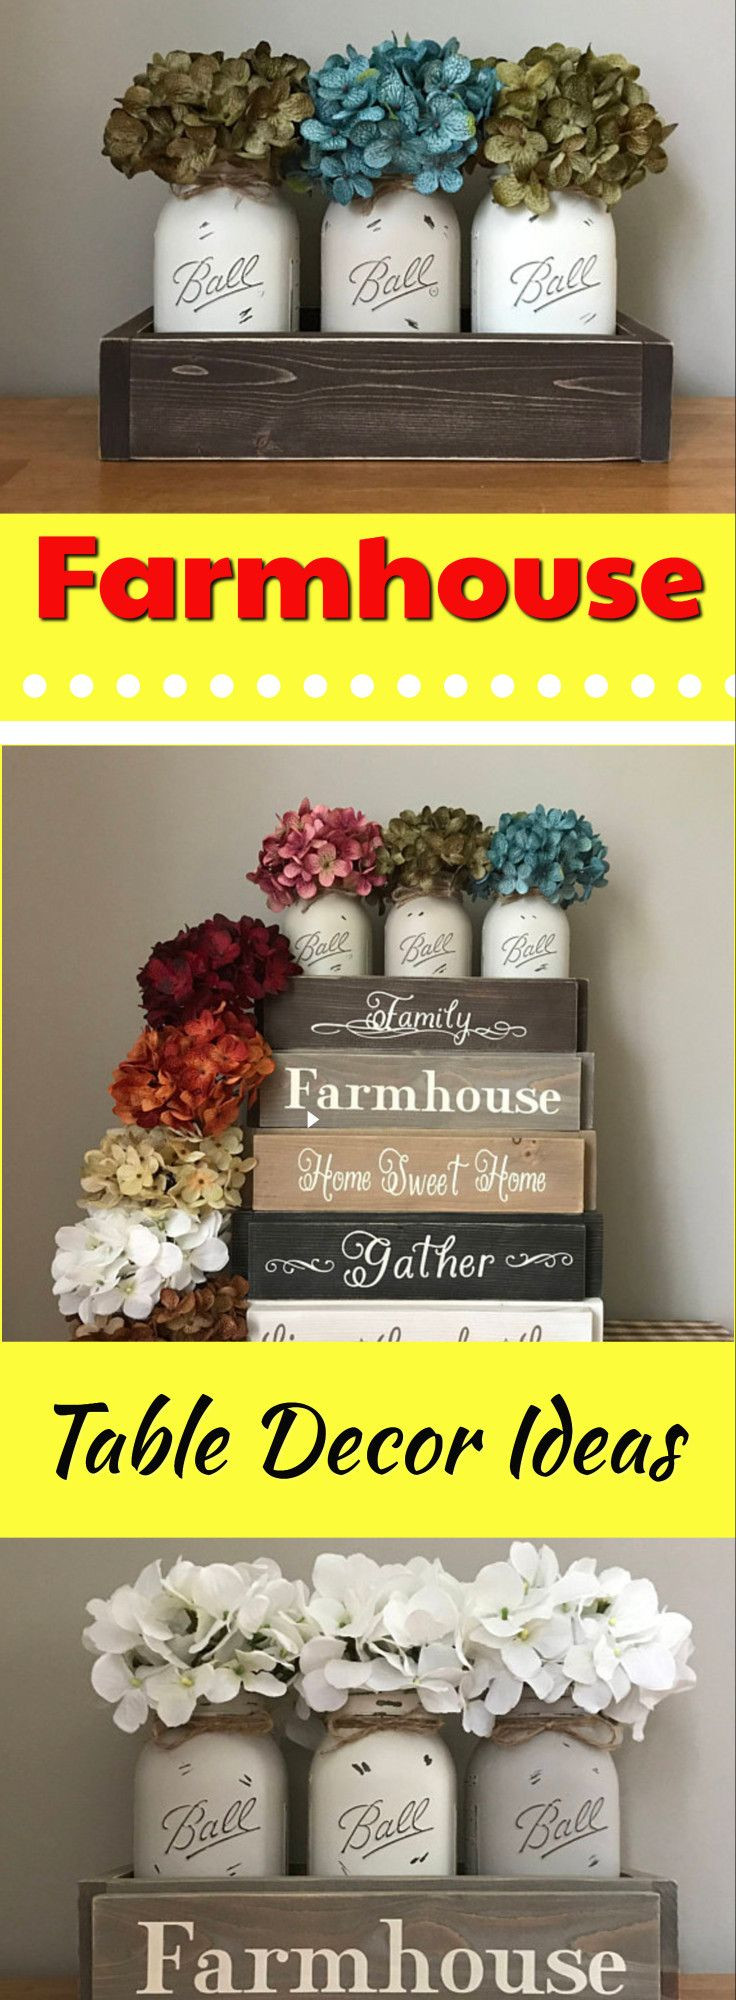 Check out these beautiful Farmhouse Table Centerpieces. Mason Jar Centerpiece, Rustic Modern Farmhouse Table Decor, Mason Jar Decor, Flower Arrangement, Kitchen Dining Table Centerpiece, Wood Sign #farmhousetabledecor #ad #farmhousestyle